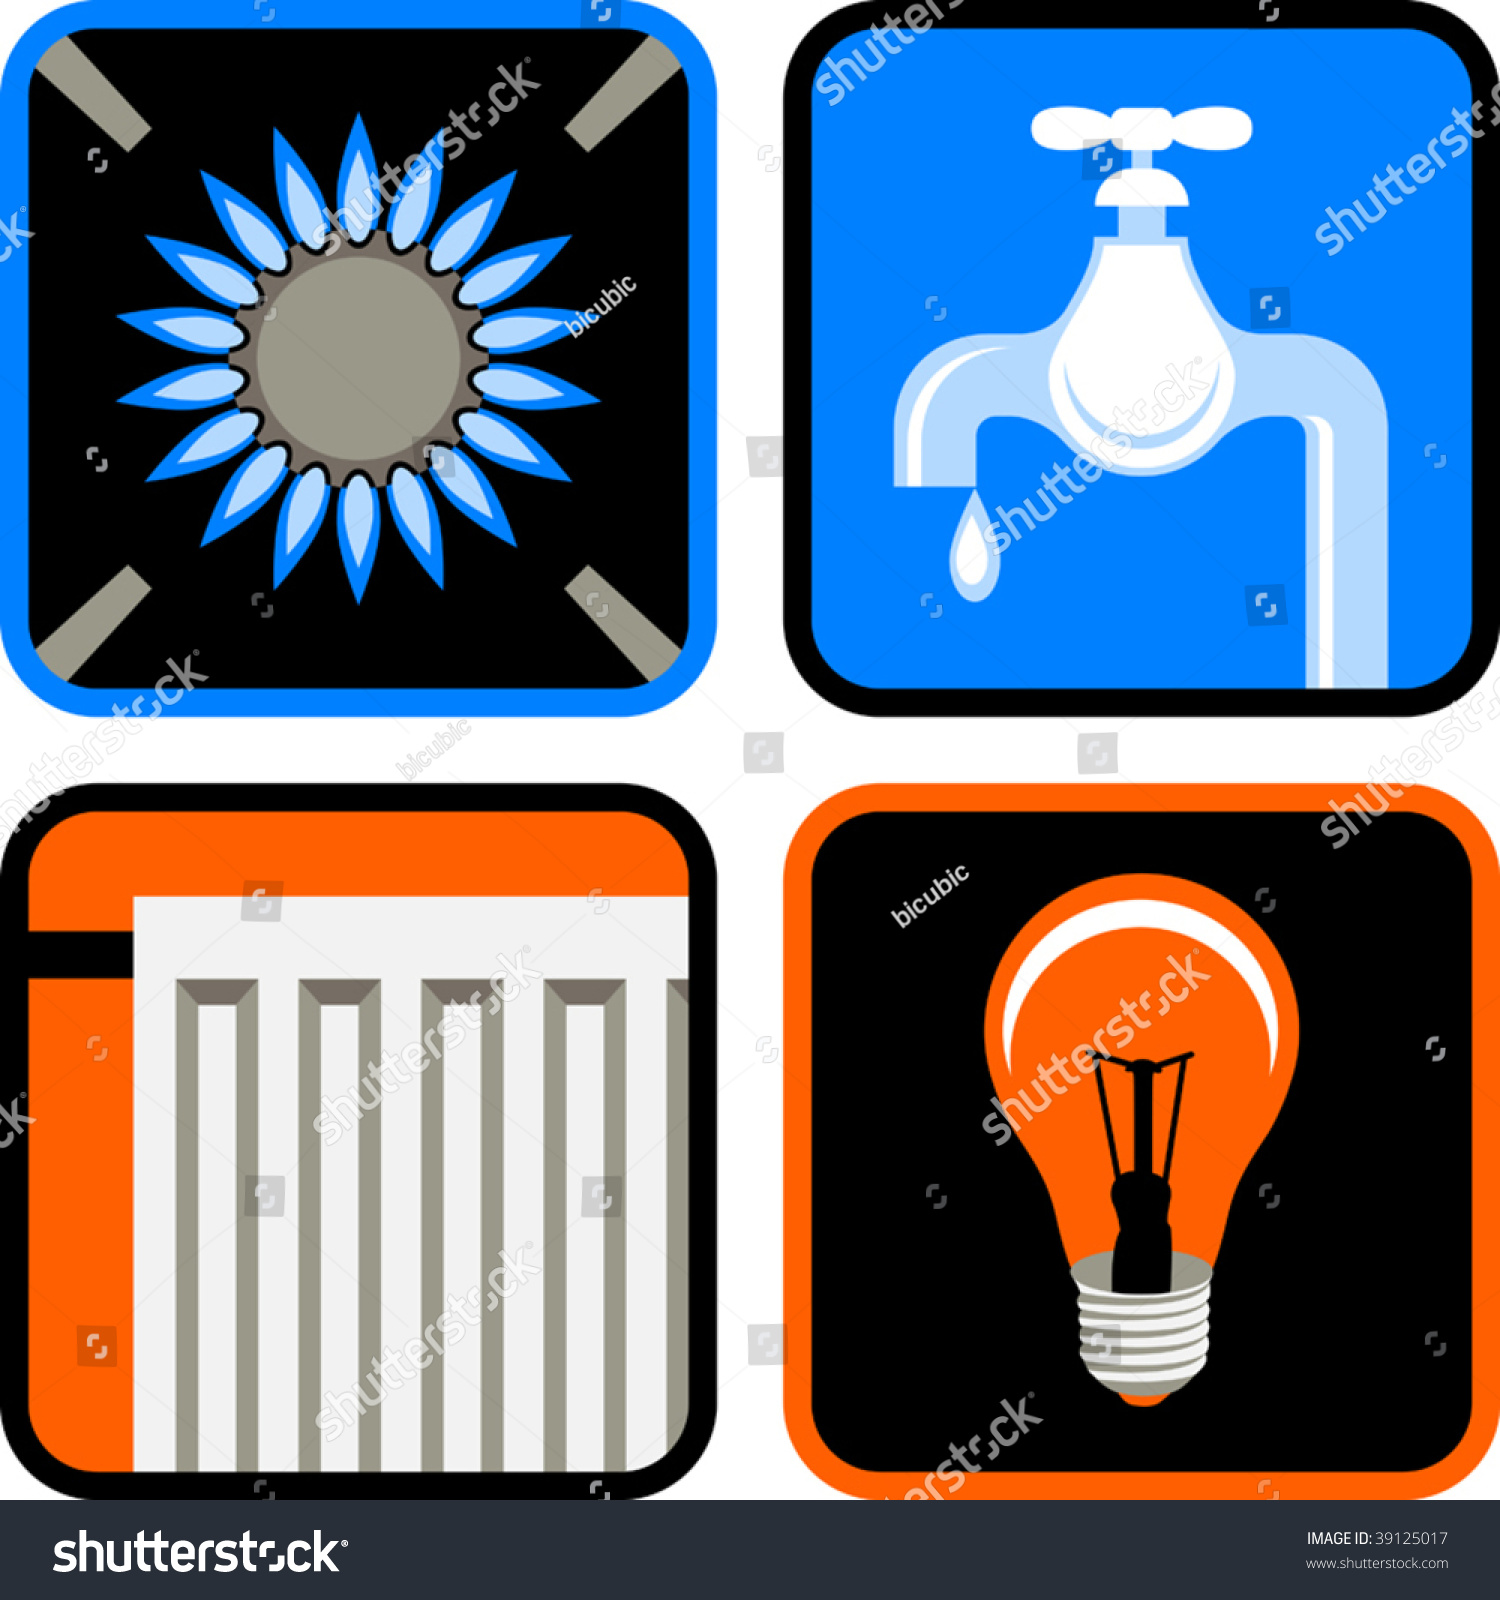 Vector Icon Set Of Four Essential Public Services: Gas ...